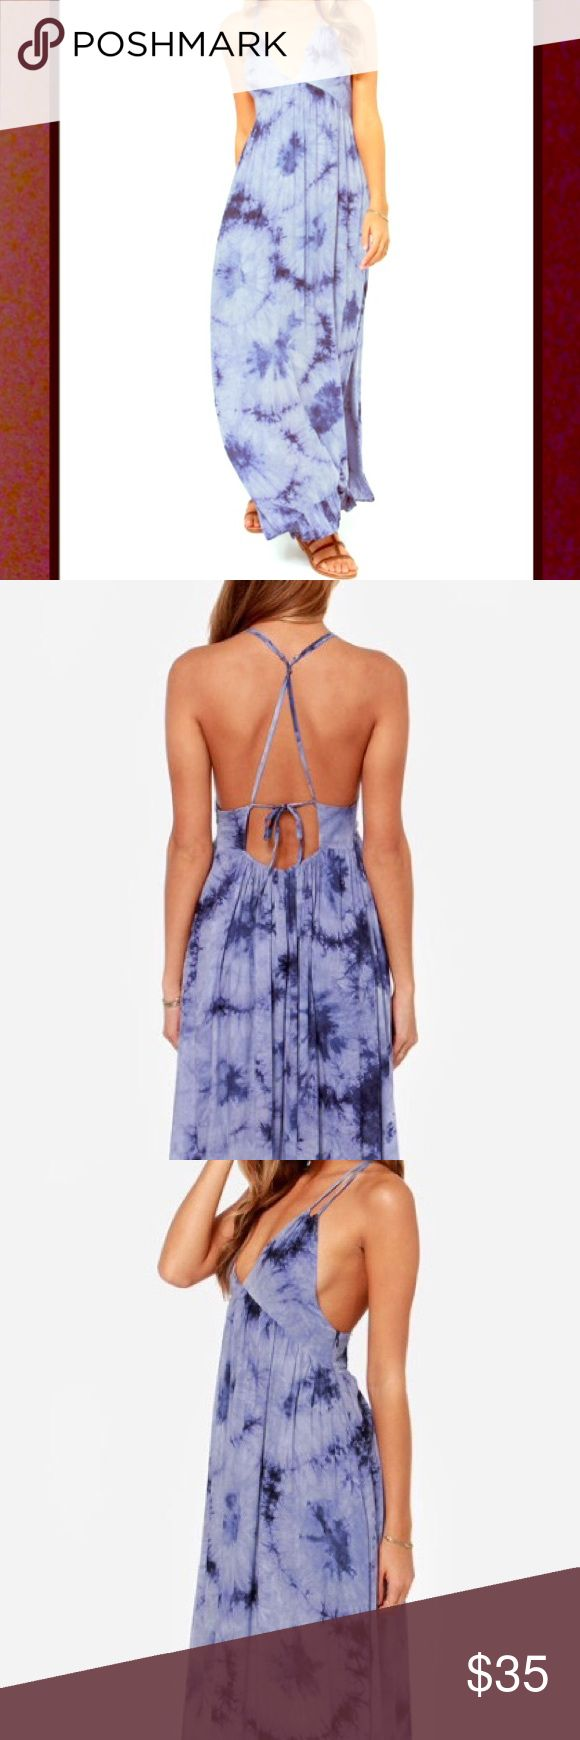 Lulu's into the blue tie dye maxi dress Never worn! Beautiful , long and flowing. Lulu's Dresses Maxi